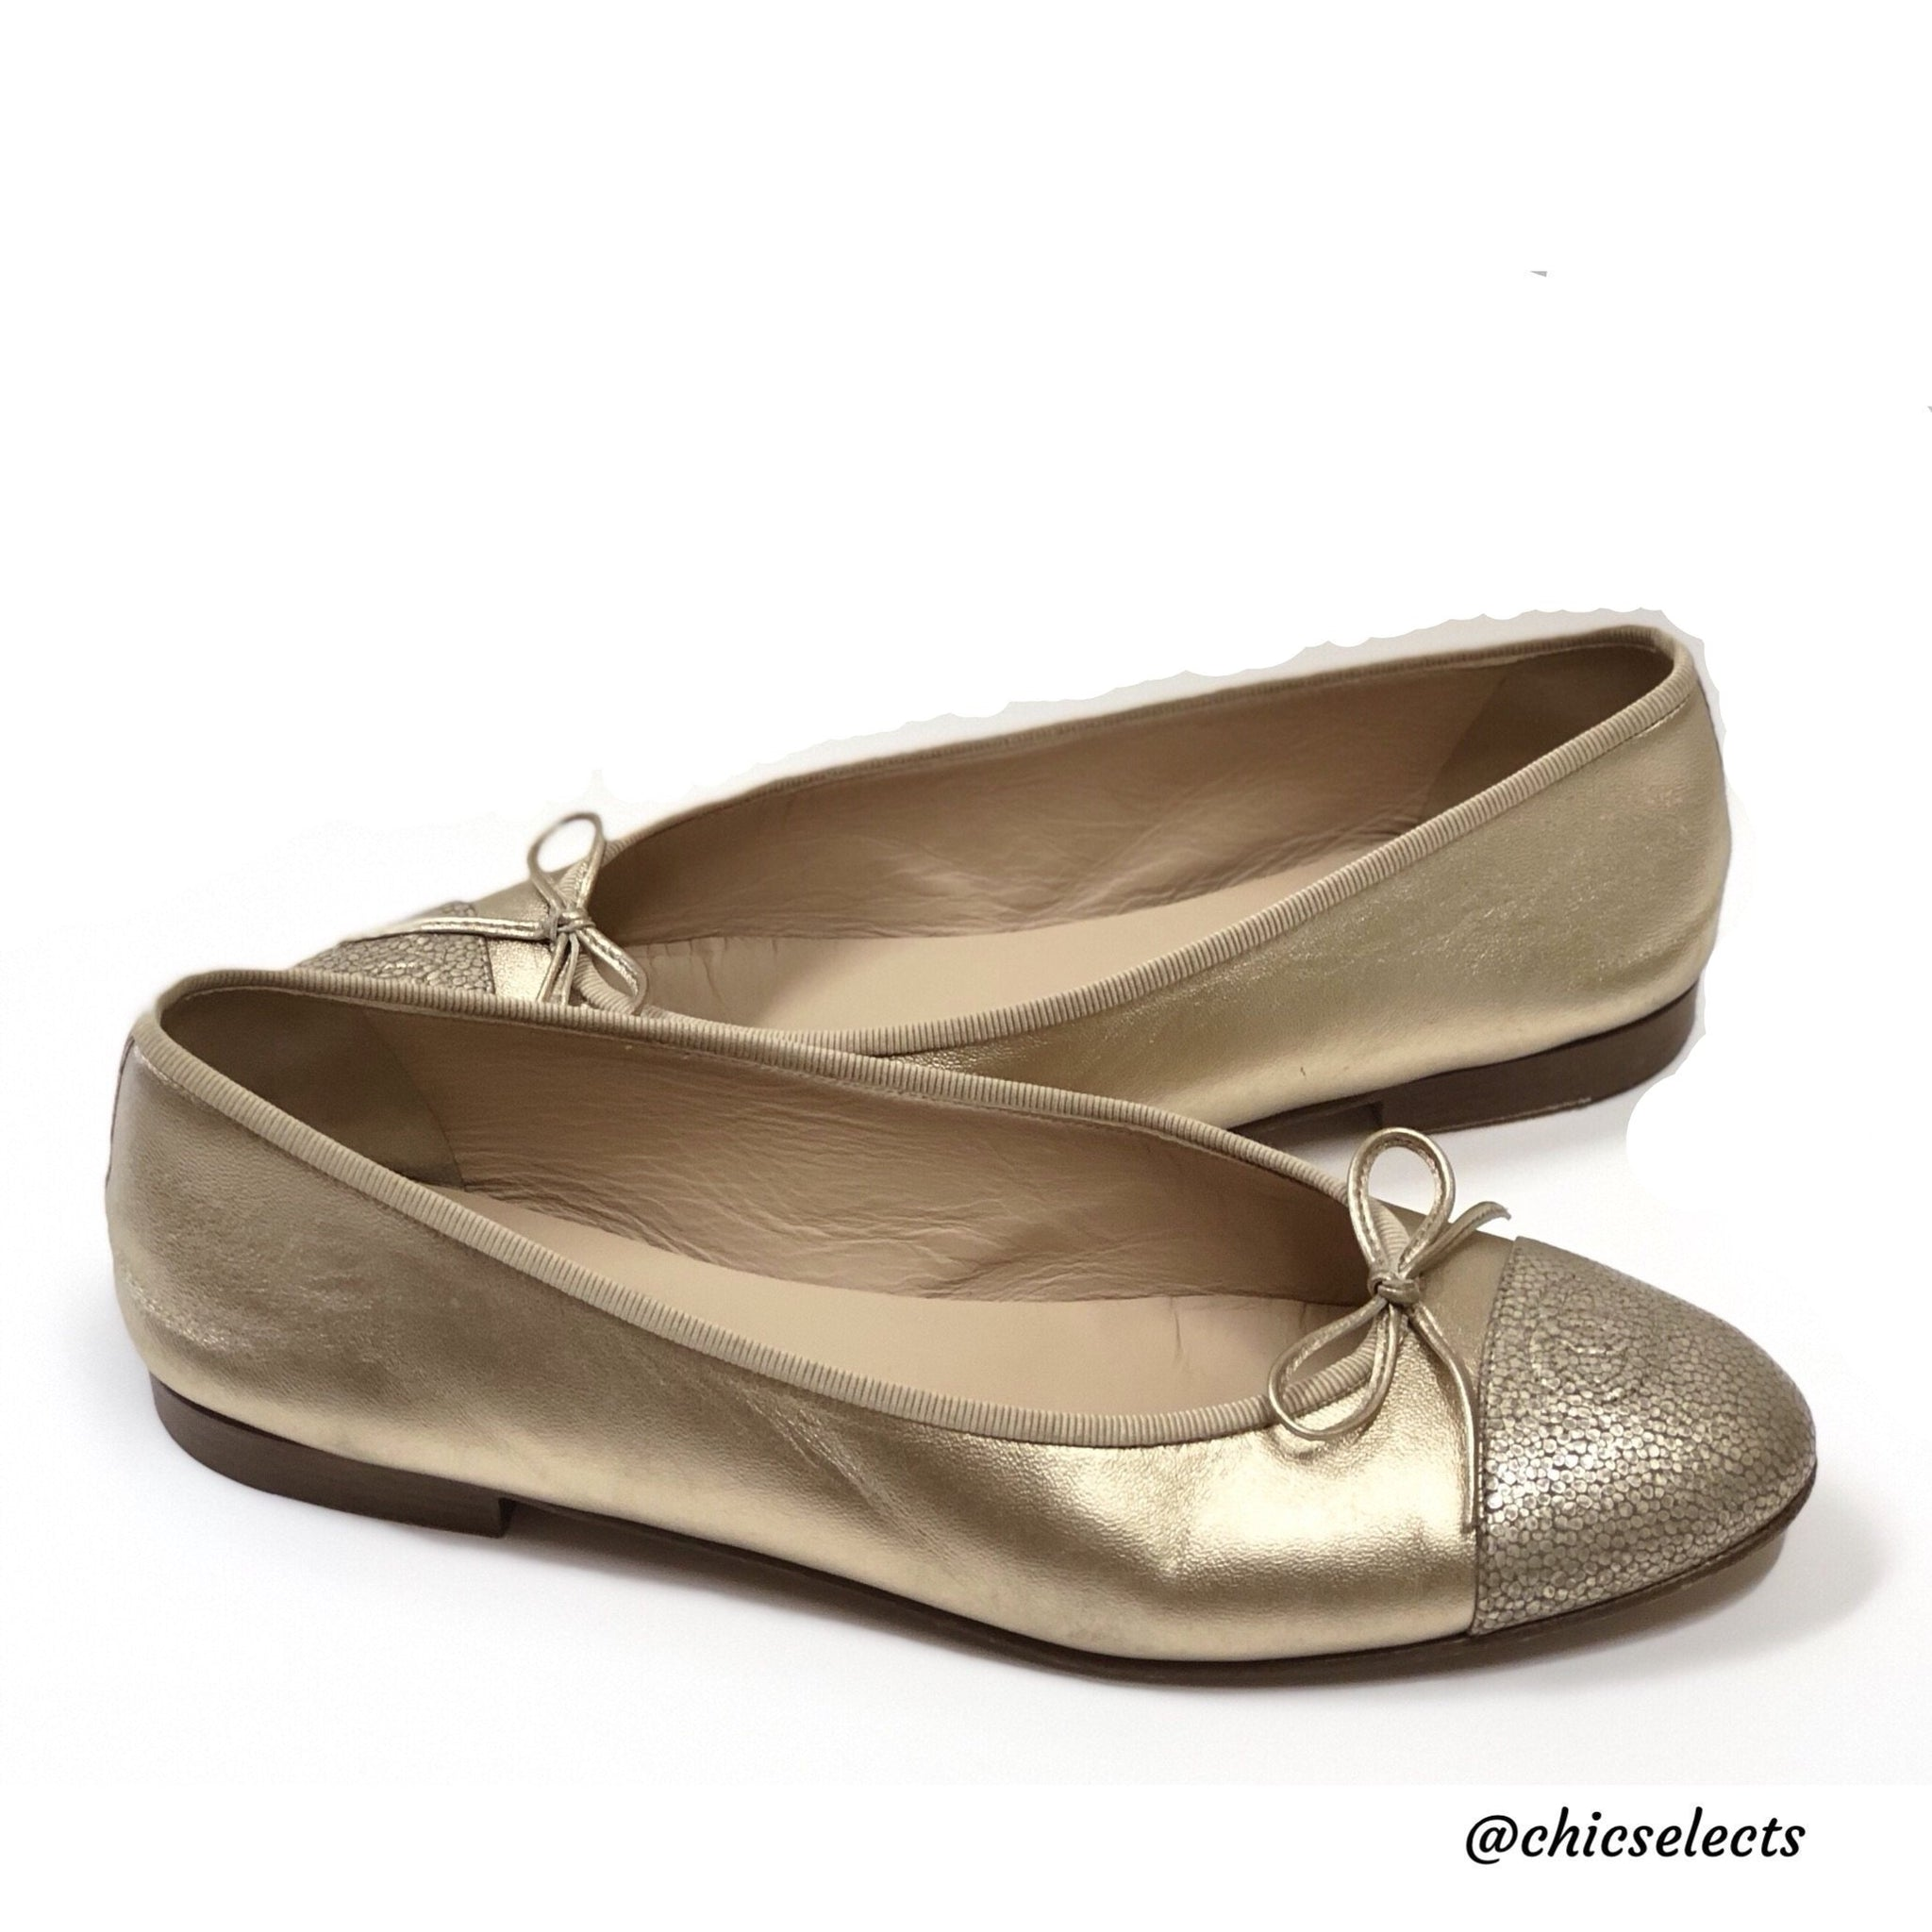 61e404af211b9 CHANEL CCCAP TOE METALLIC LEATHER BALLERINA FLATS SIZE 42 – Chic ...